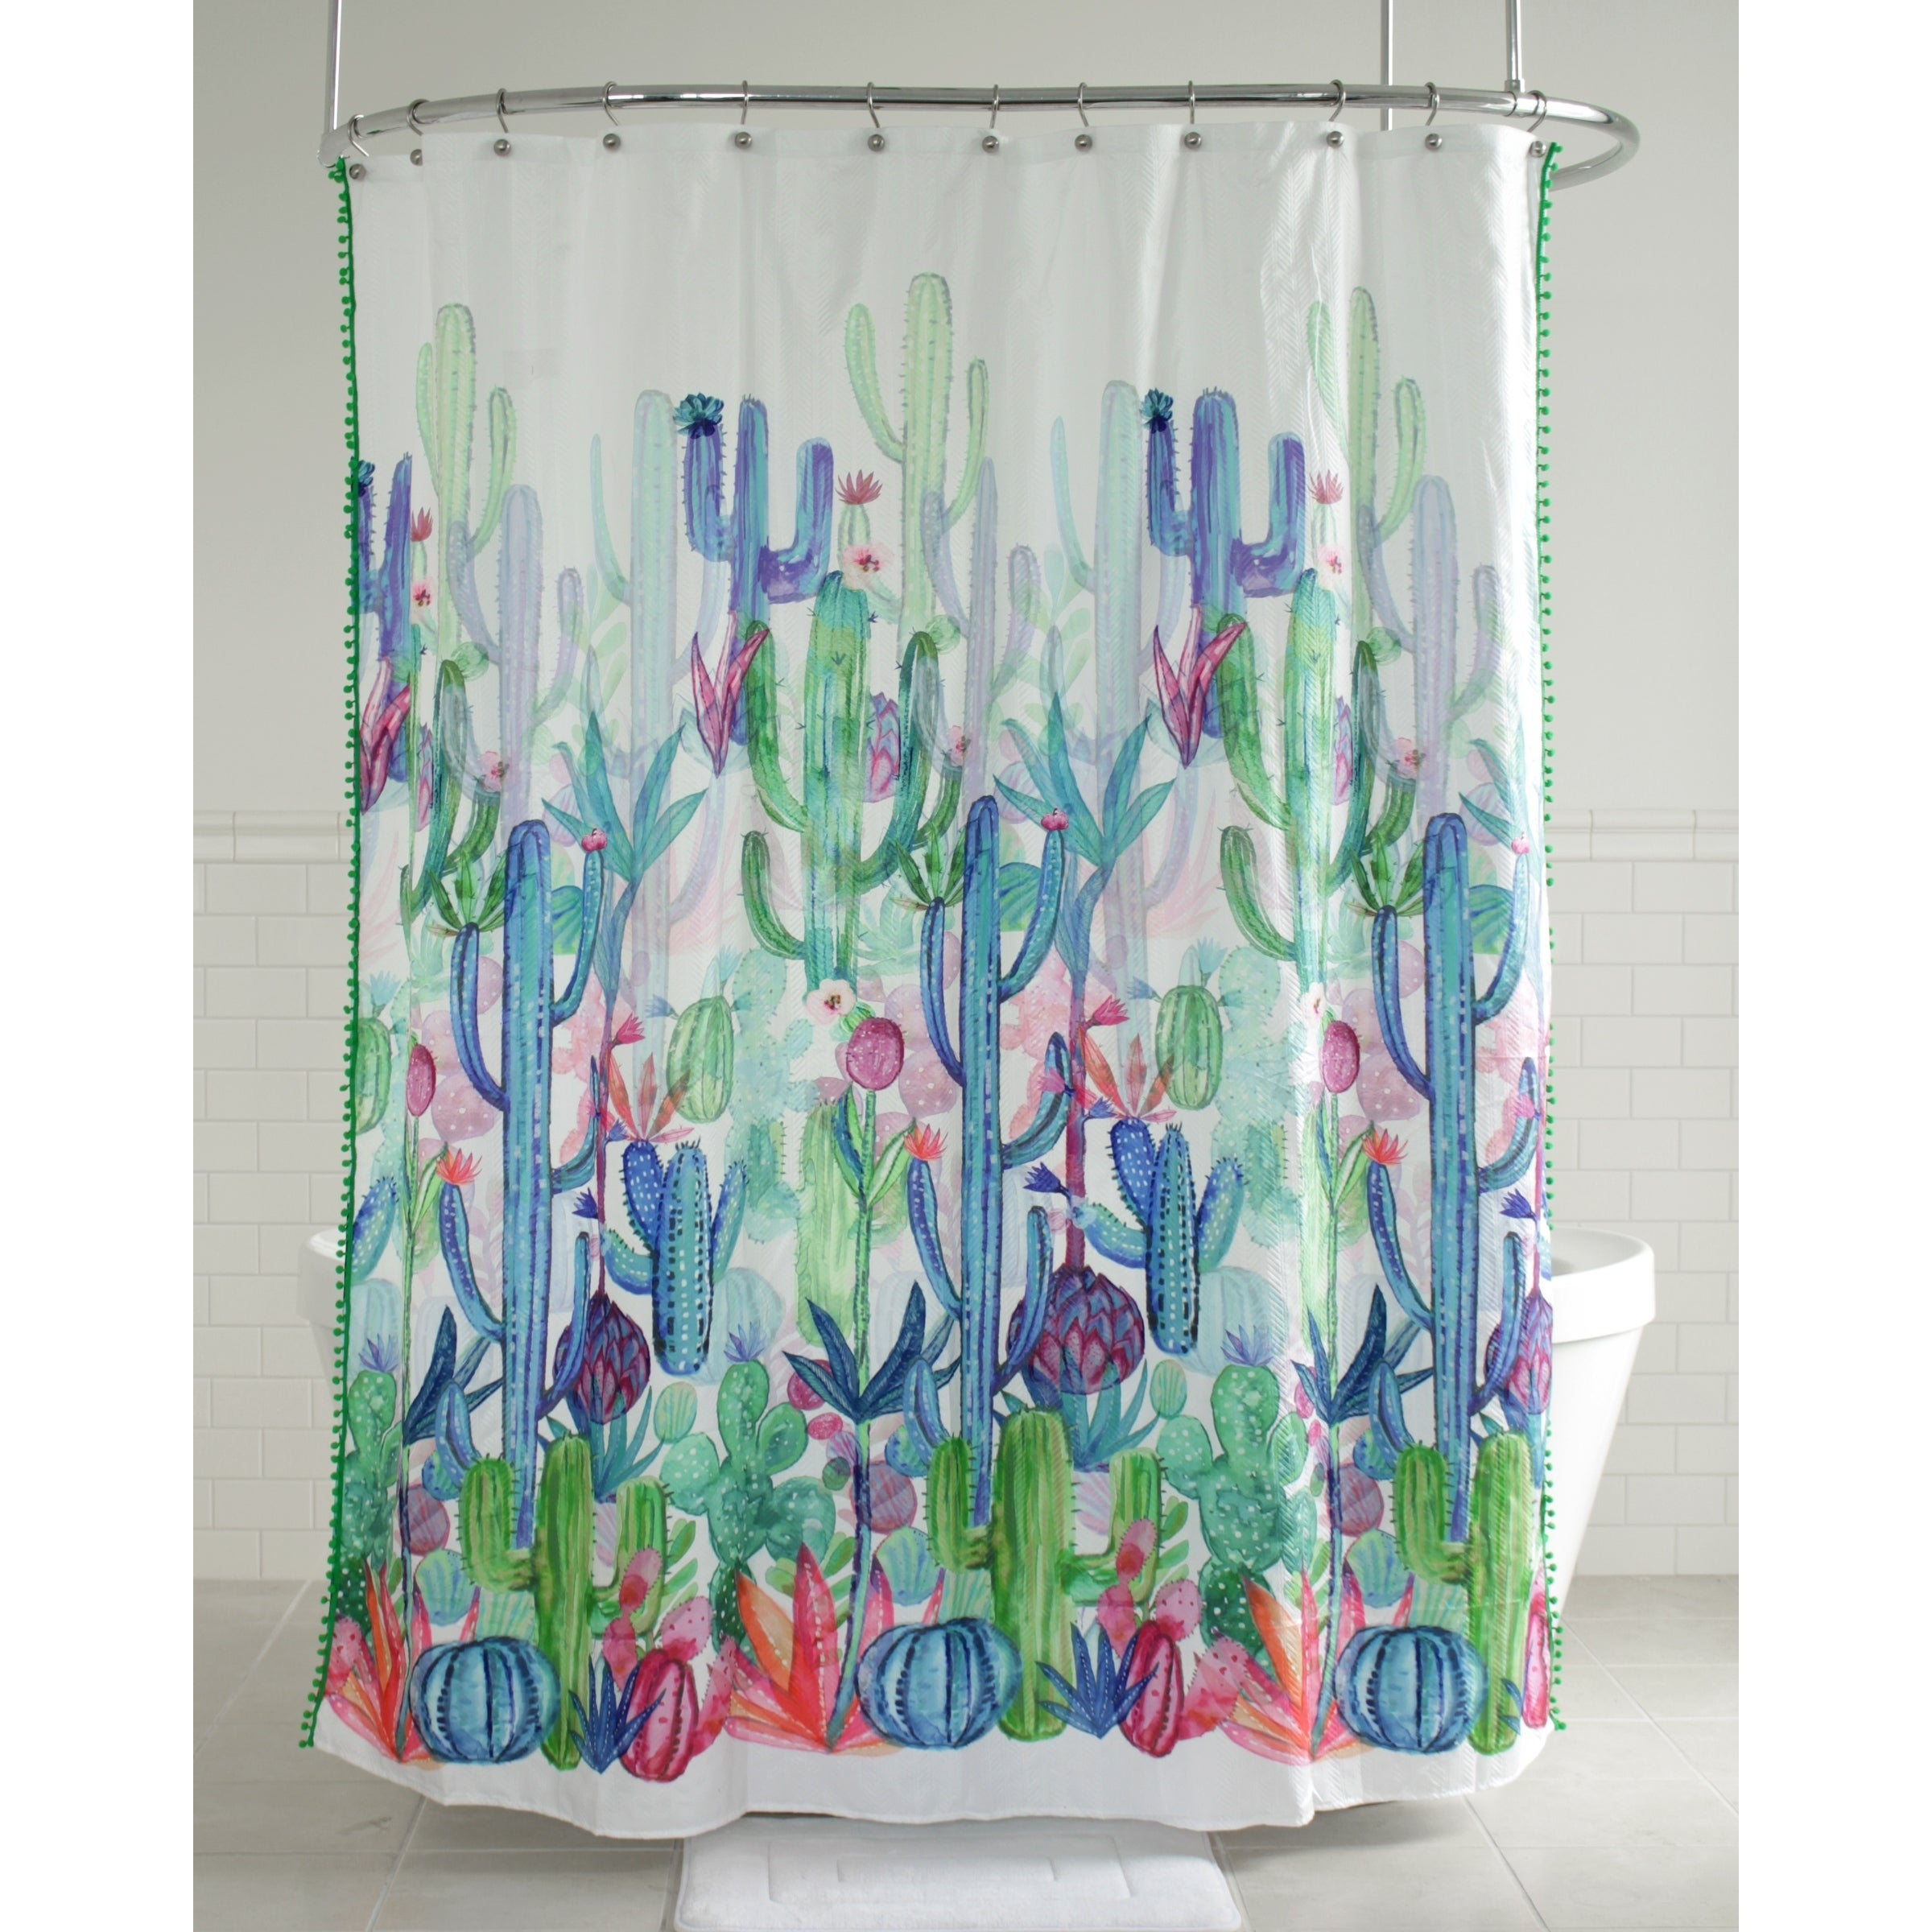 Shop Splash Home Gobi Cactus Polyester Fabric Shower Curtain 70 X 72 Multi Colors